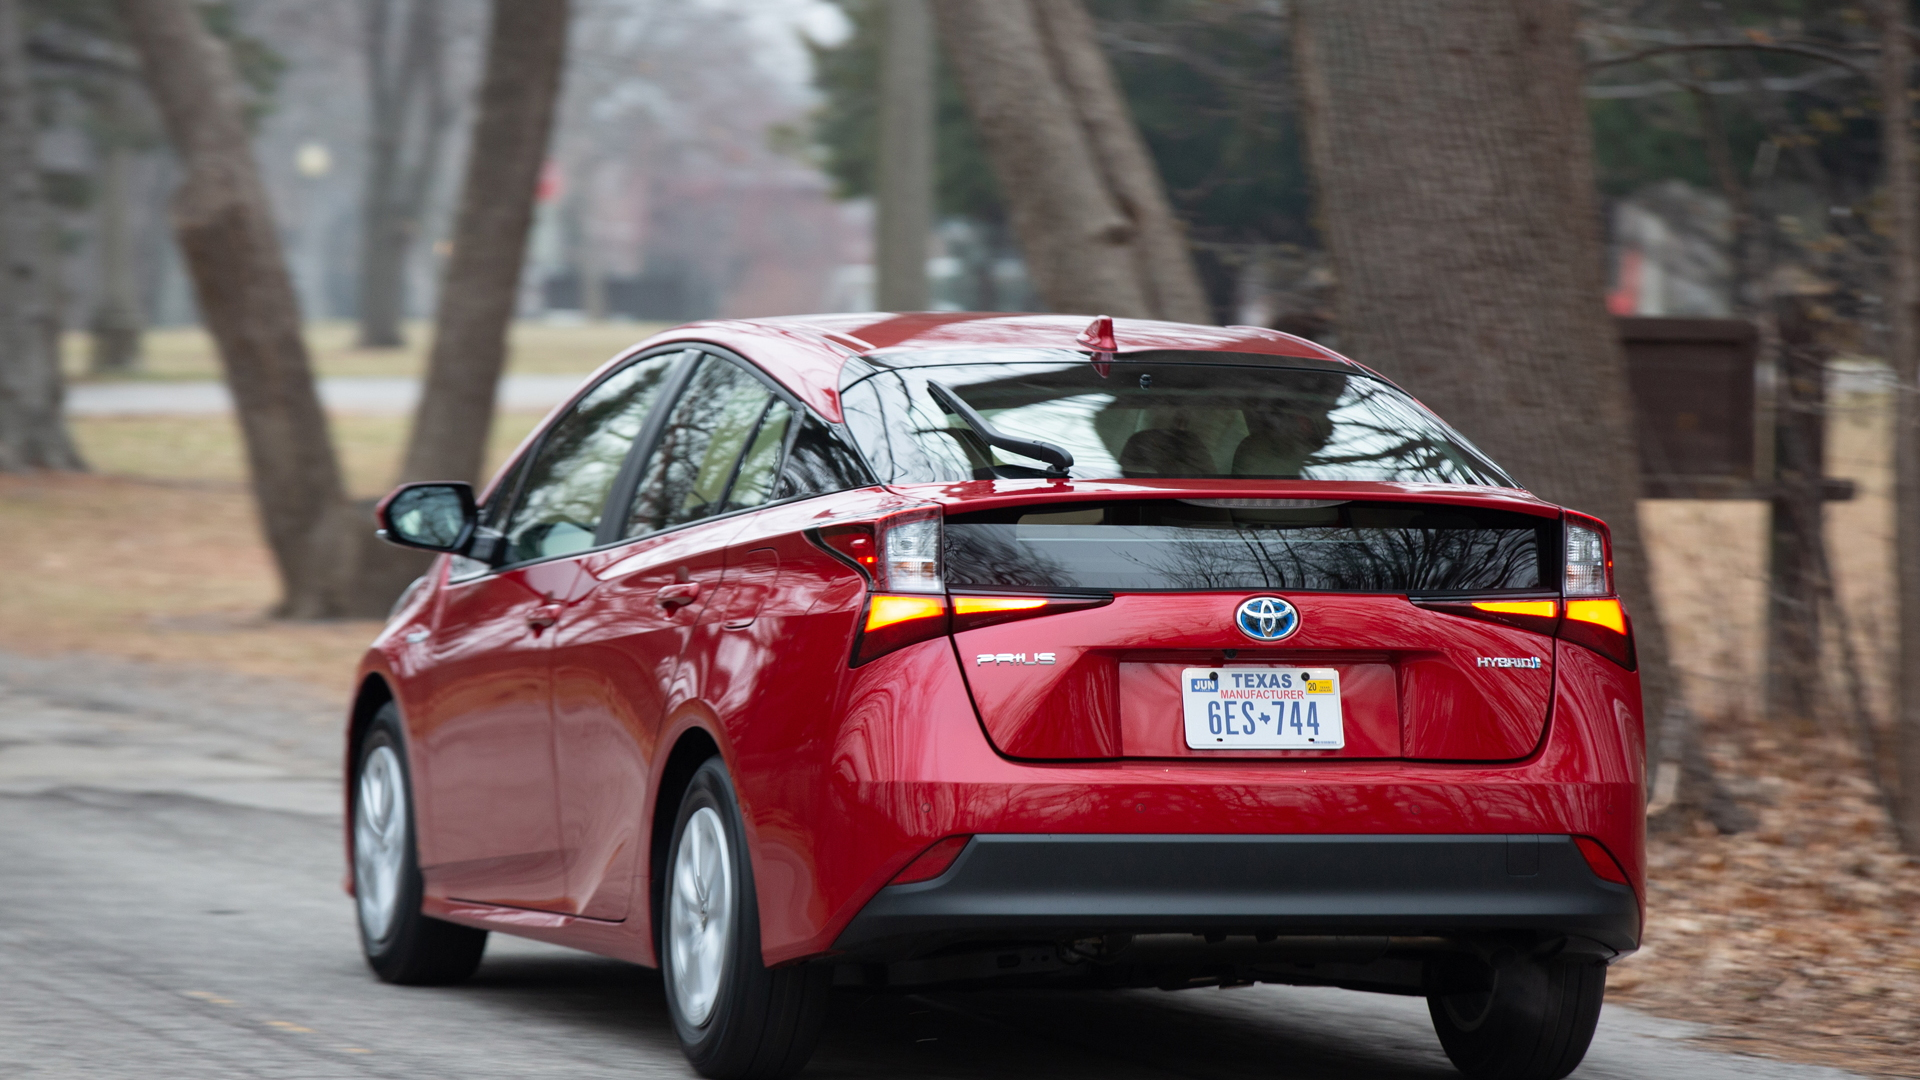 2020 Toyota Prius Up To 56 Mpg Now With Carplay And Alexa